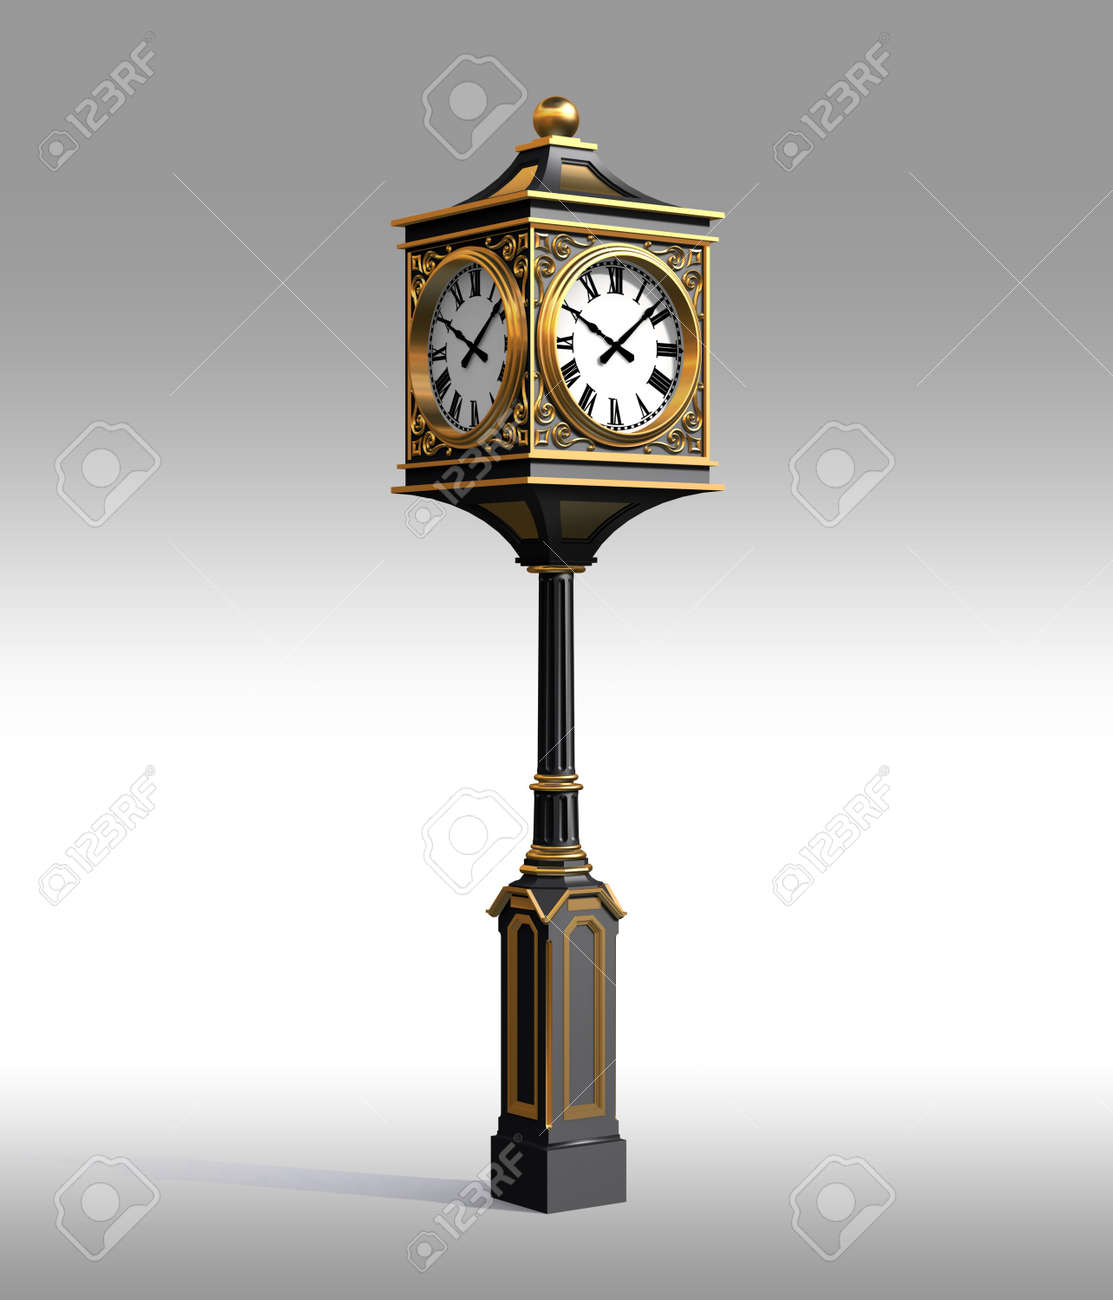 3D Model of bronze classic street clock with work clipping path Stock Photo - 8457448